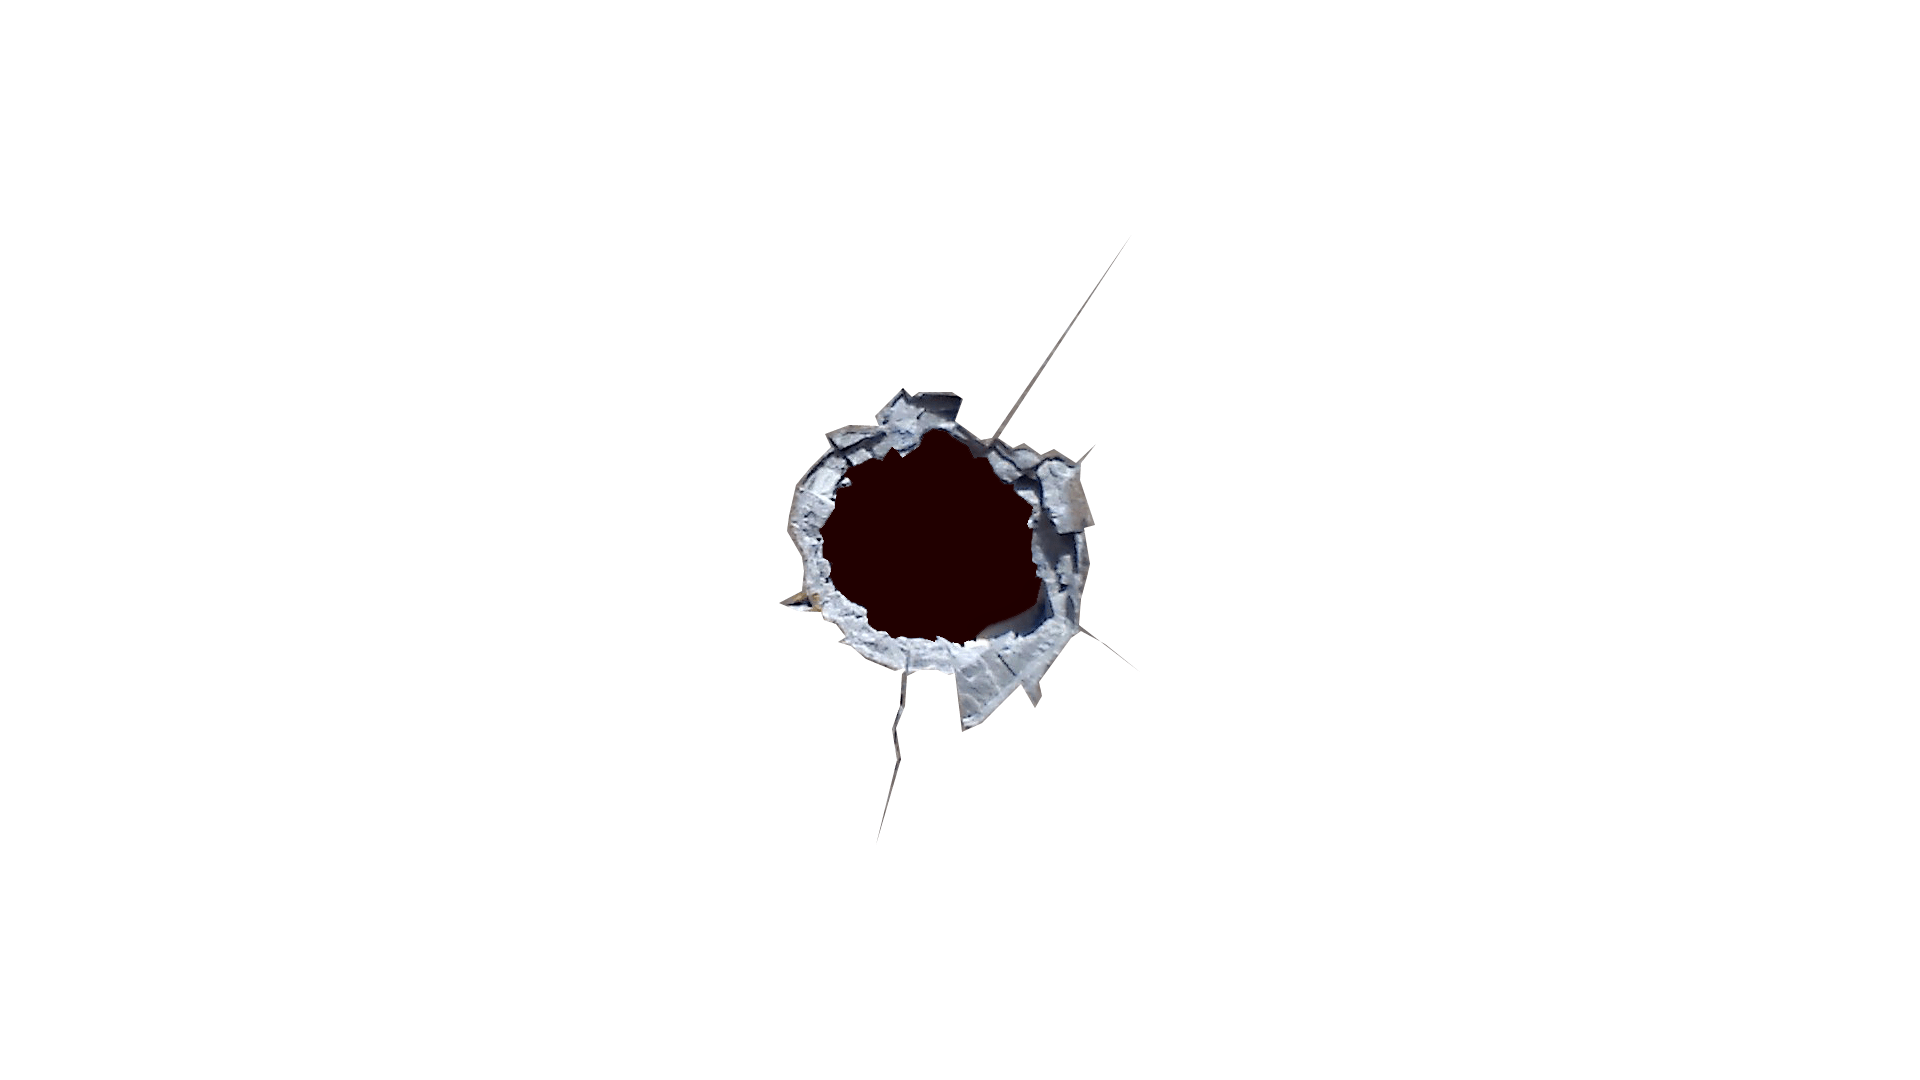 Hole clipart glass transparent. Bullet collection in metal